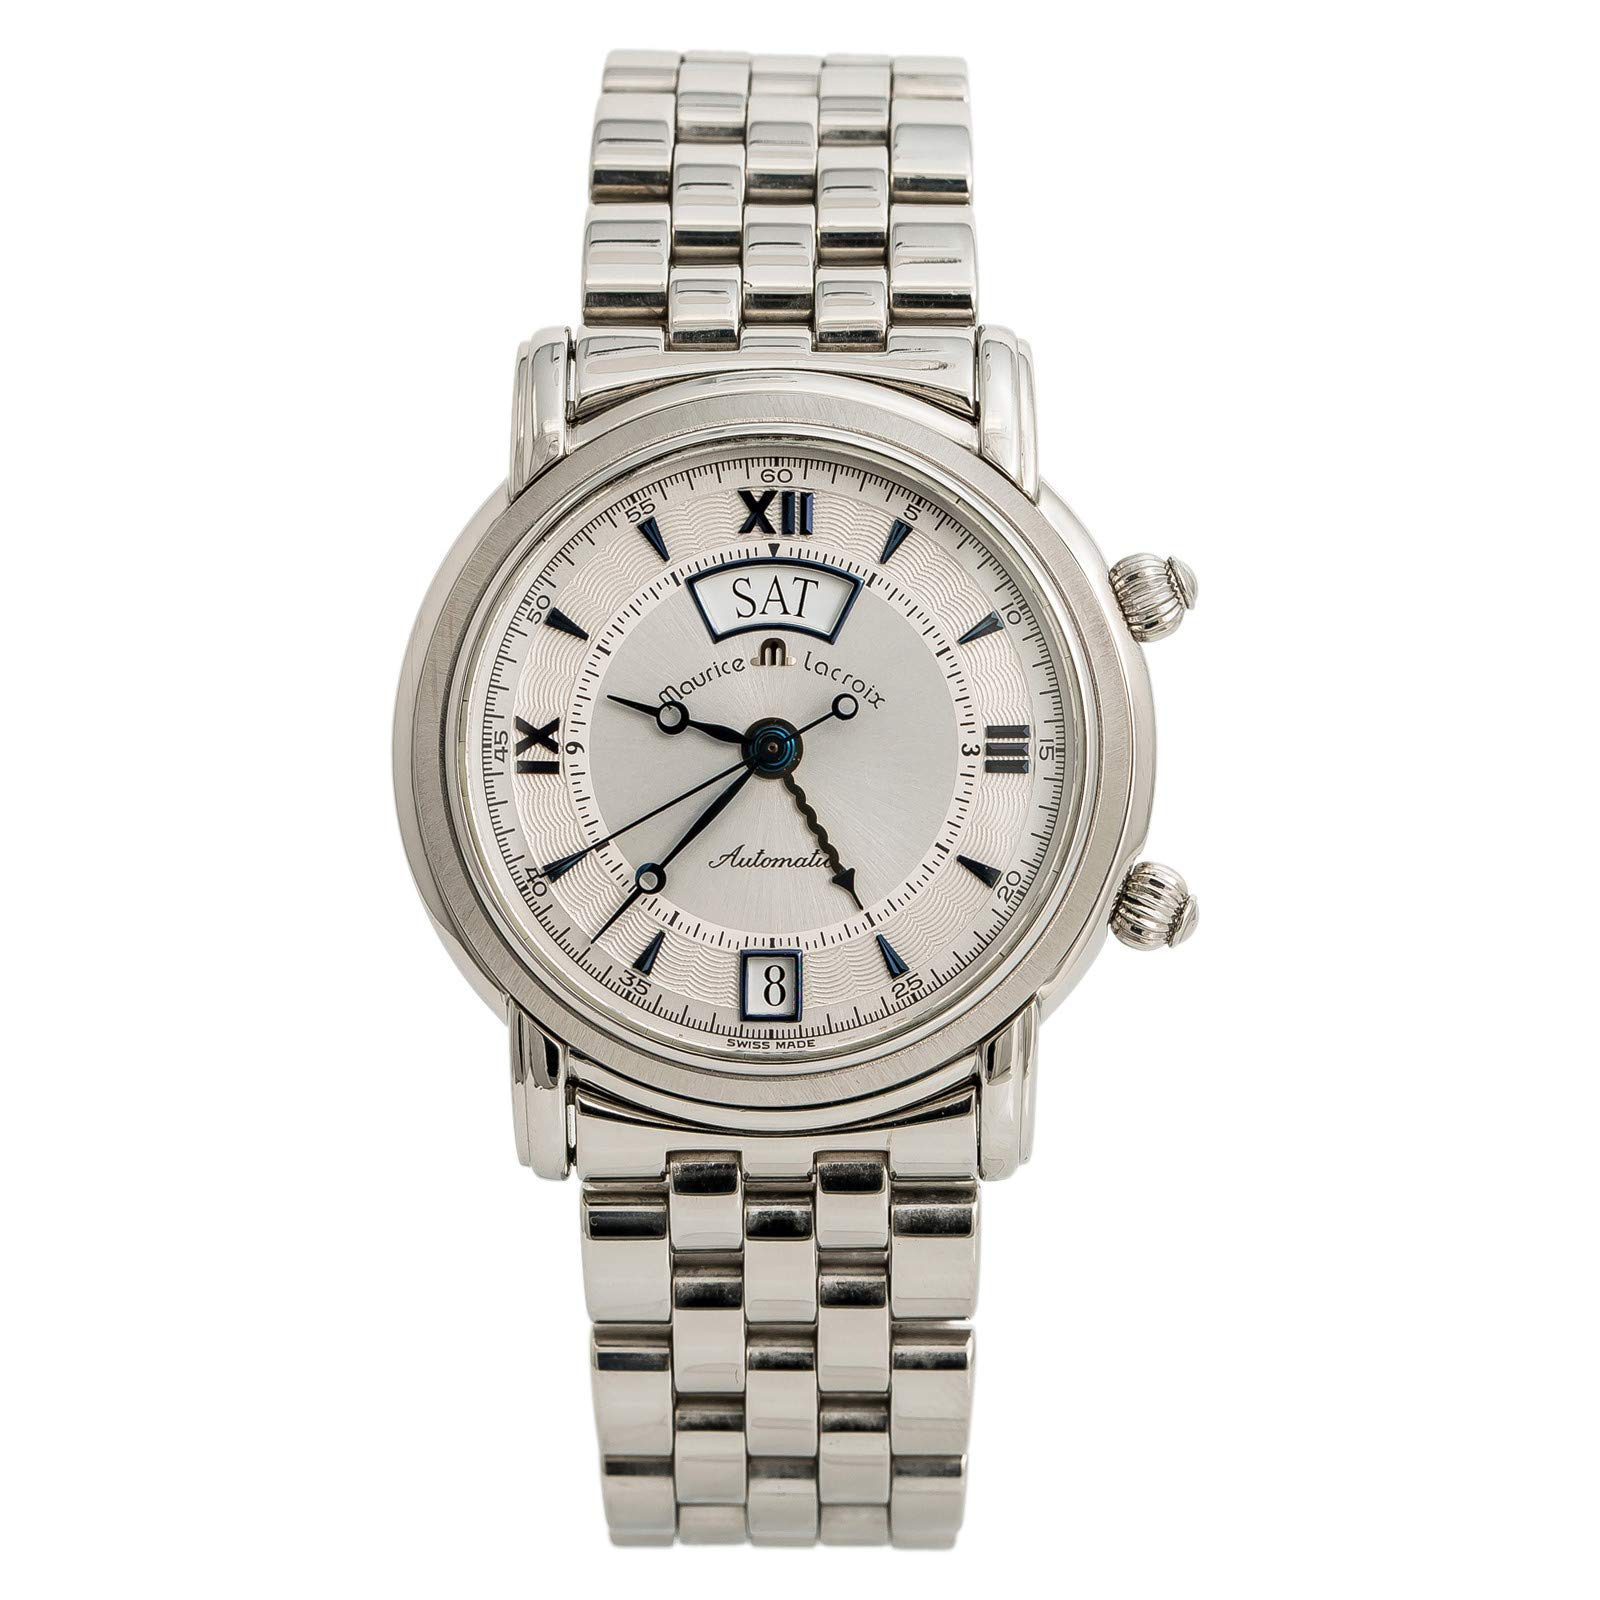 Maurice Lacroix Masterpiece Automatic-self-Wind Male Watch ML 20779-1125 (Certified Pre-Owned)